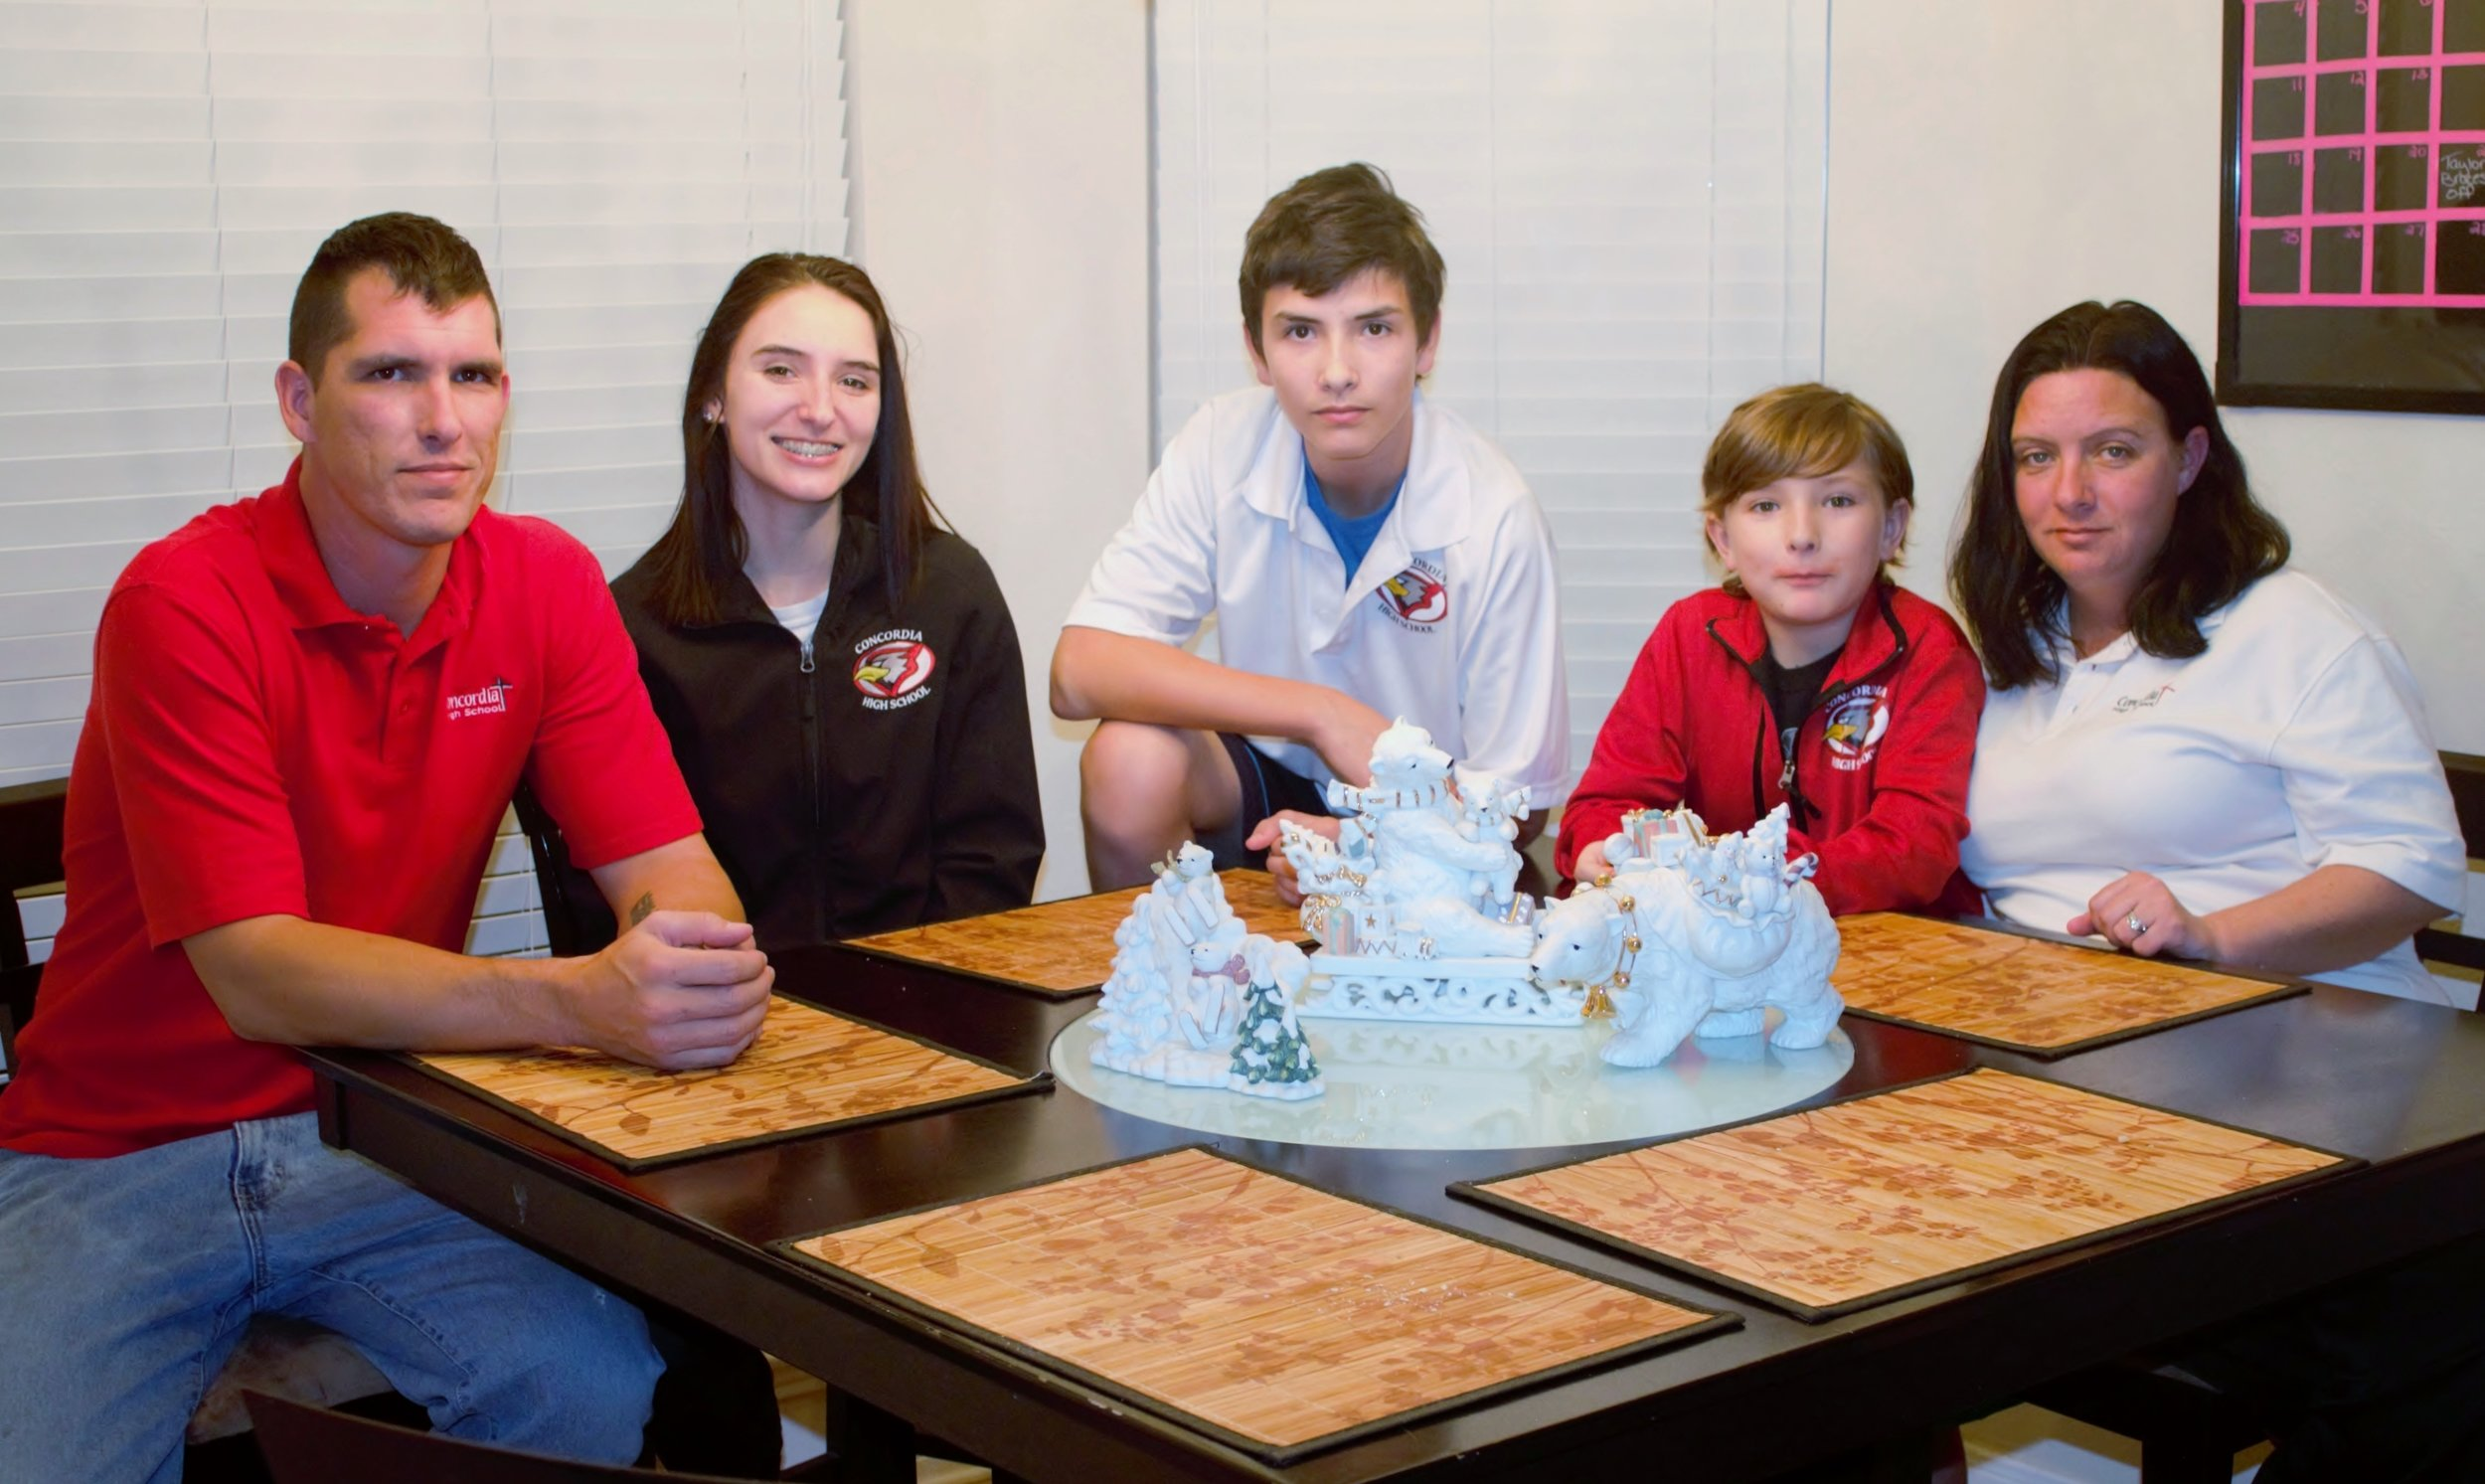 Nathan, Taylor (11th grade), Devin (9th grade), Dominic (5th grade) and Anne